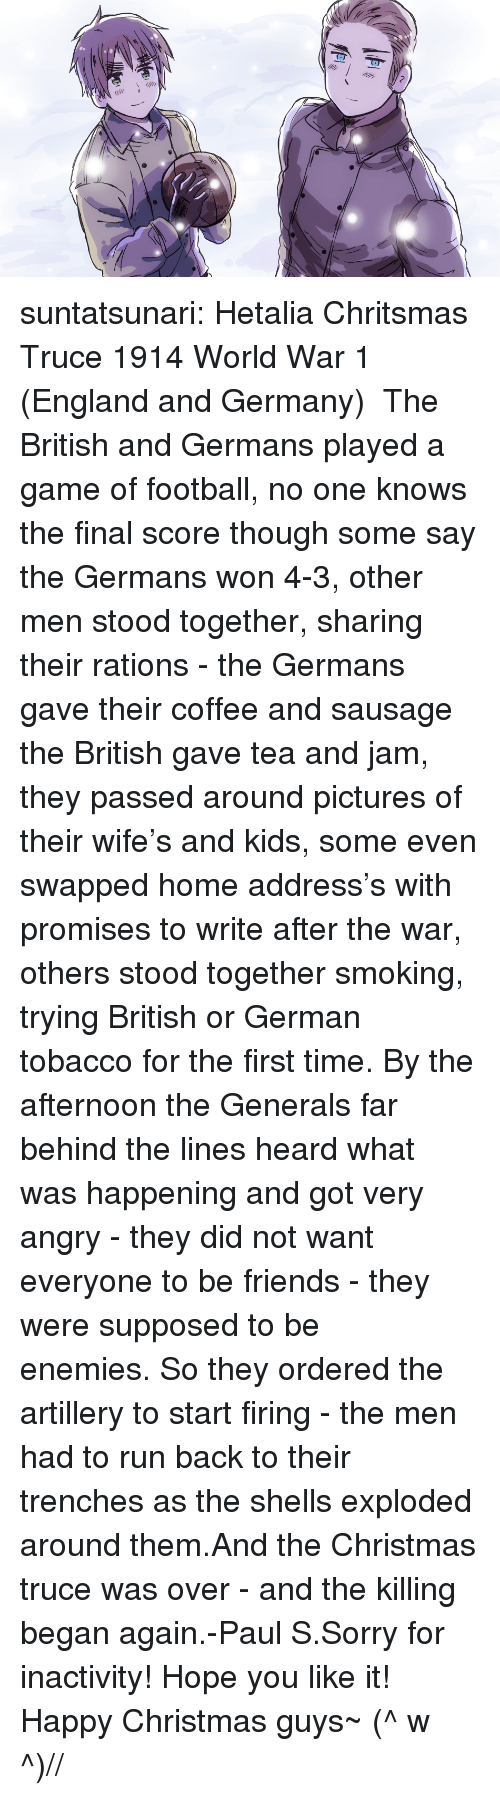 Christmas, England, and Football: suntatsunari:  Hetalia Chritsmas Truce 1914 World War 1 (England and Germany)   The British and Germans played a game of football, no one knows the final score though some say the Germans won 4-3, other men stood together, sharing their rations - the Germans gave their coffee and sausage the British gave tea and jam, they passed around pictures of their wife's and kids, some even swapped home address's with promises to write after the war, others stood together smoking, trying British or German tobacco for the first time. By the afternoon the Generals far behind the lines heard what was happening and got very angry - they did not want everyone to be friends - they were supposed to be enemies. So they ordered the artillery to start firing - the men had to run back to their trenches as the shells exploded around them.And the Christmas truce was over - and the killing began again.-Paul S.Sorry for inactivity! Hope you like it! Happy Christmas guys~ (^ w ^)//